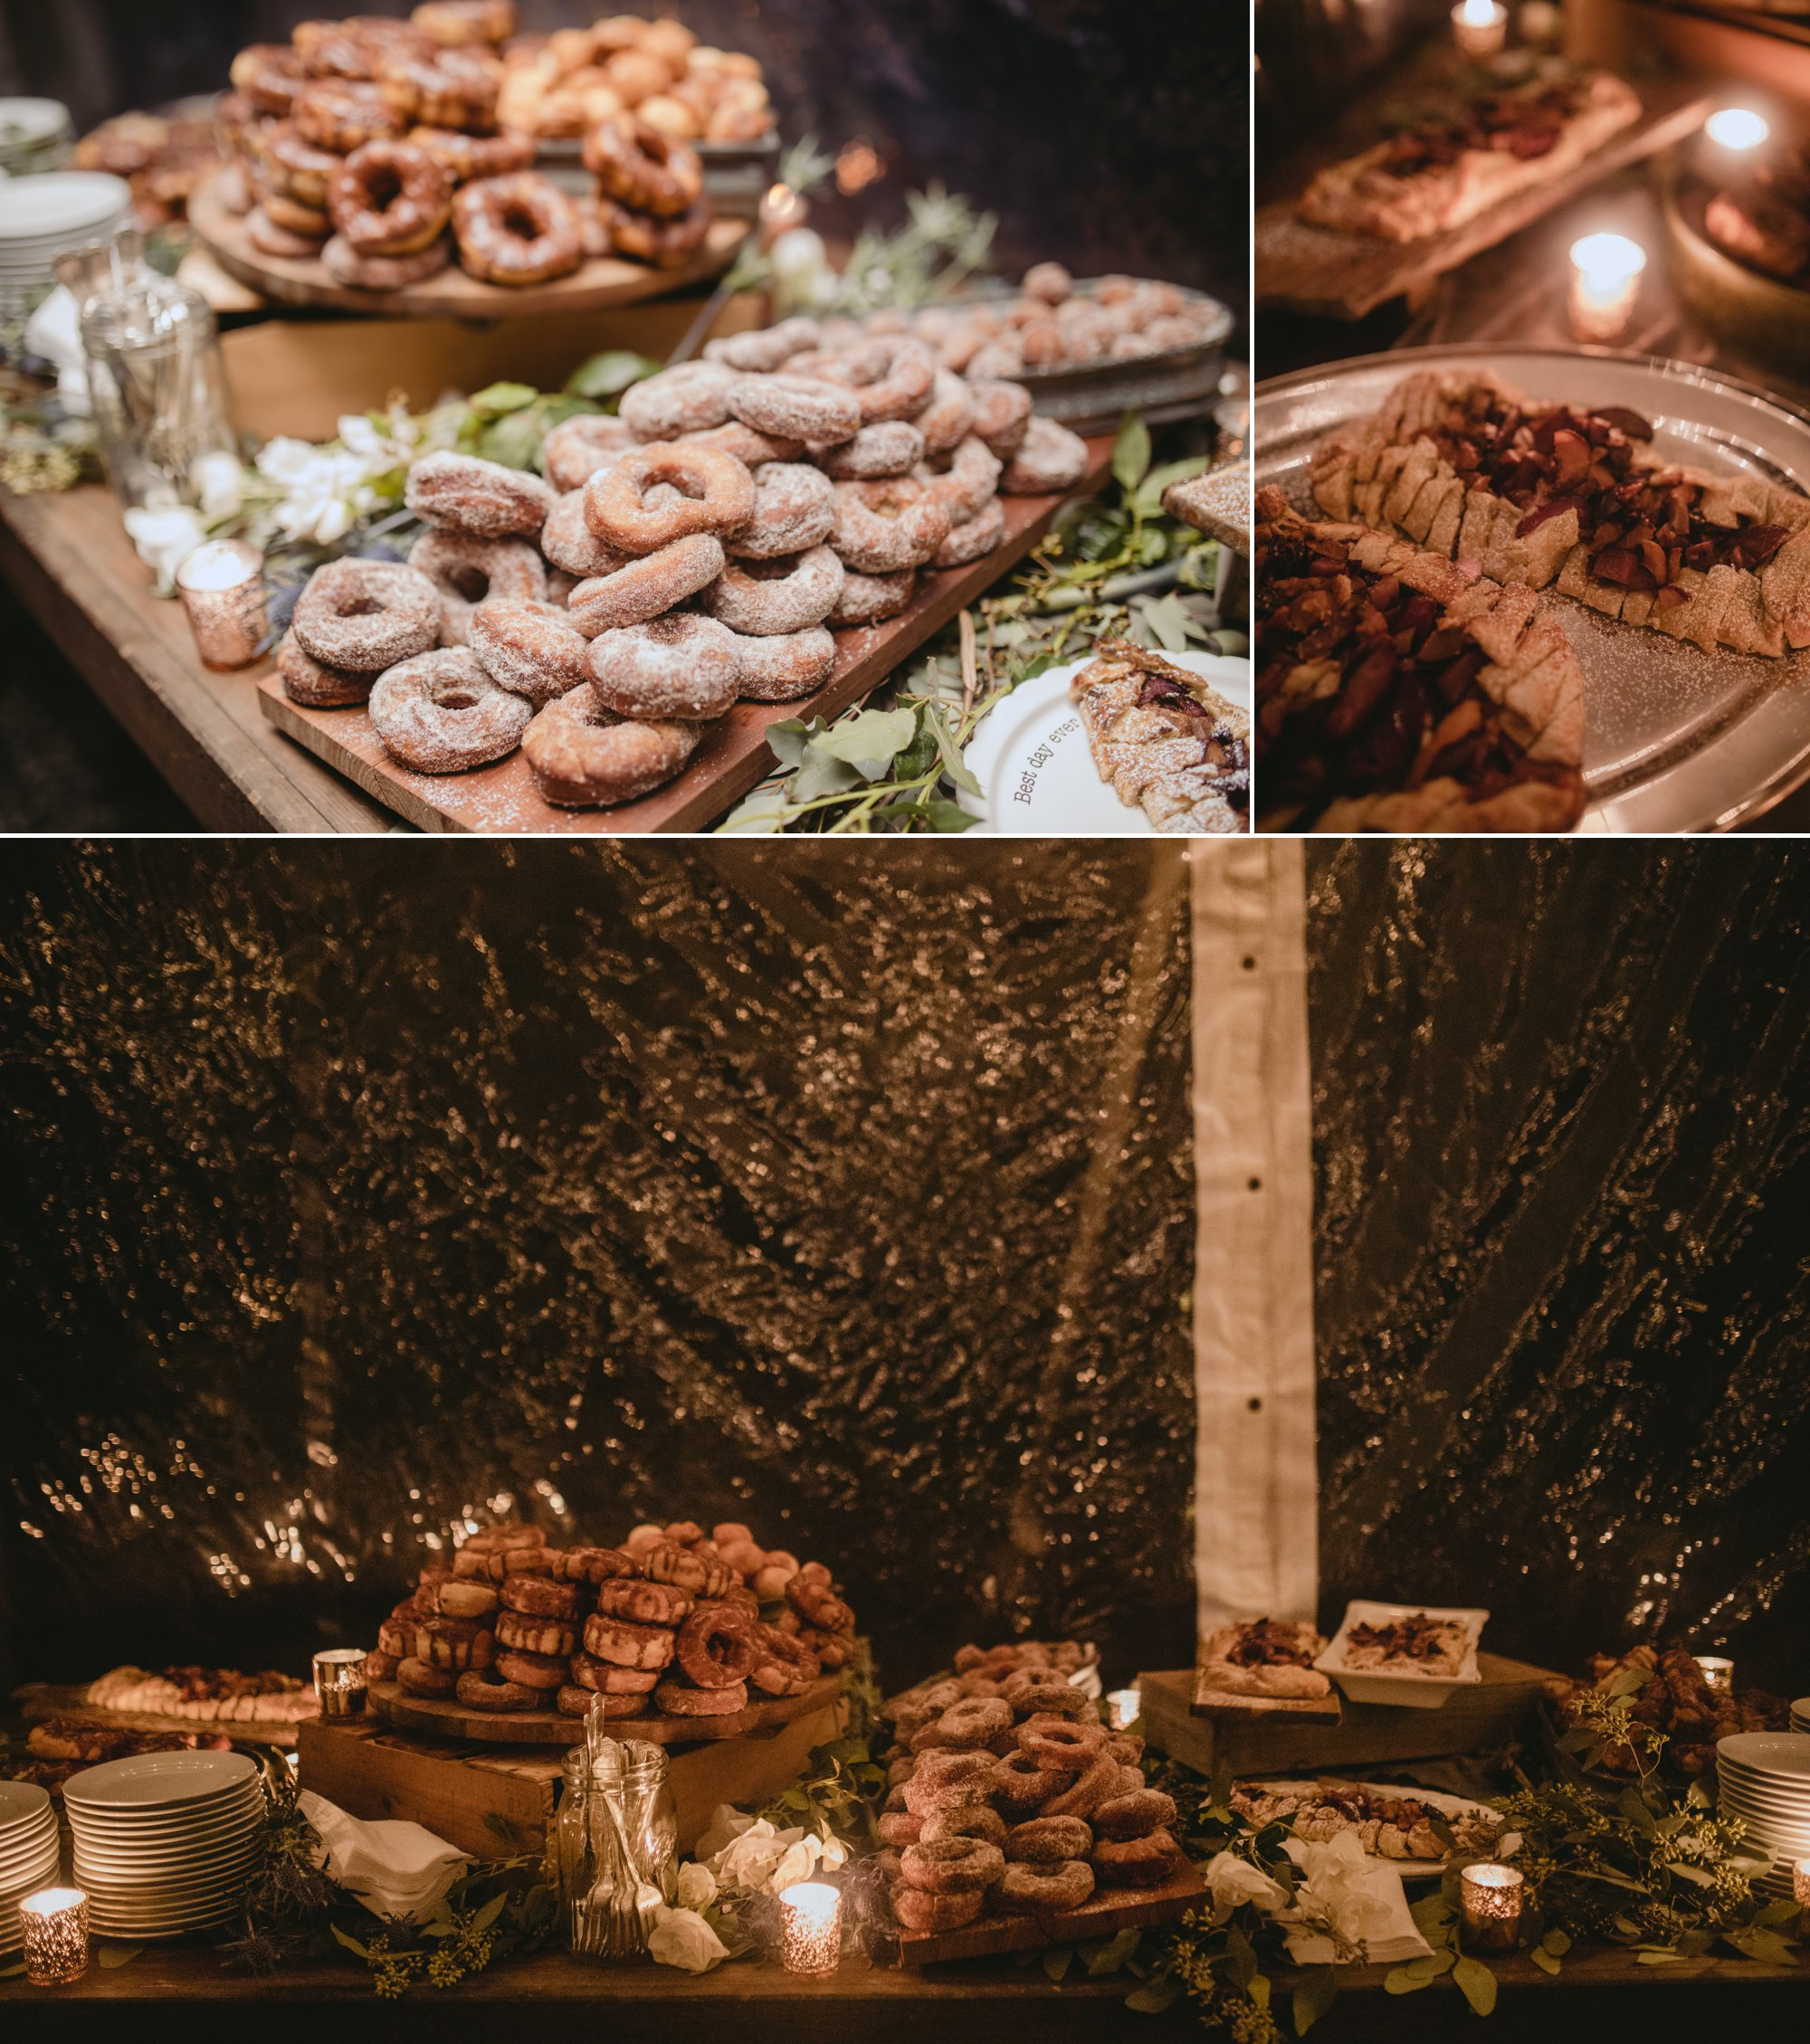 October Jewish lesbian wedding at Foxfire Mountain House in Upstate New York. Desserts!